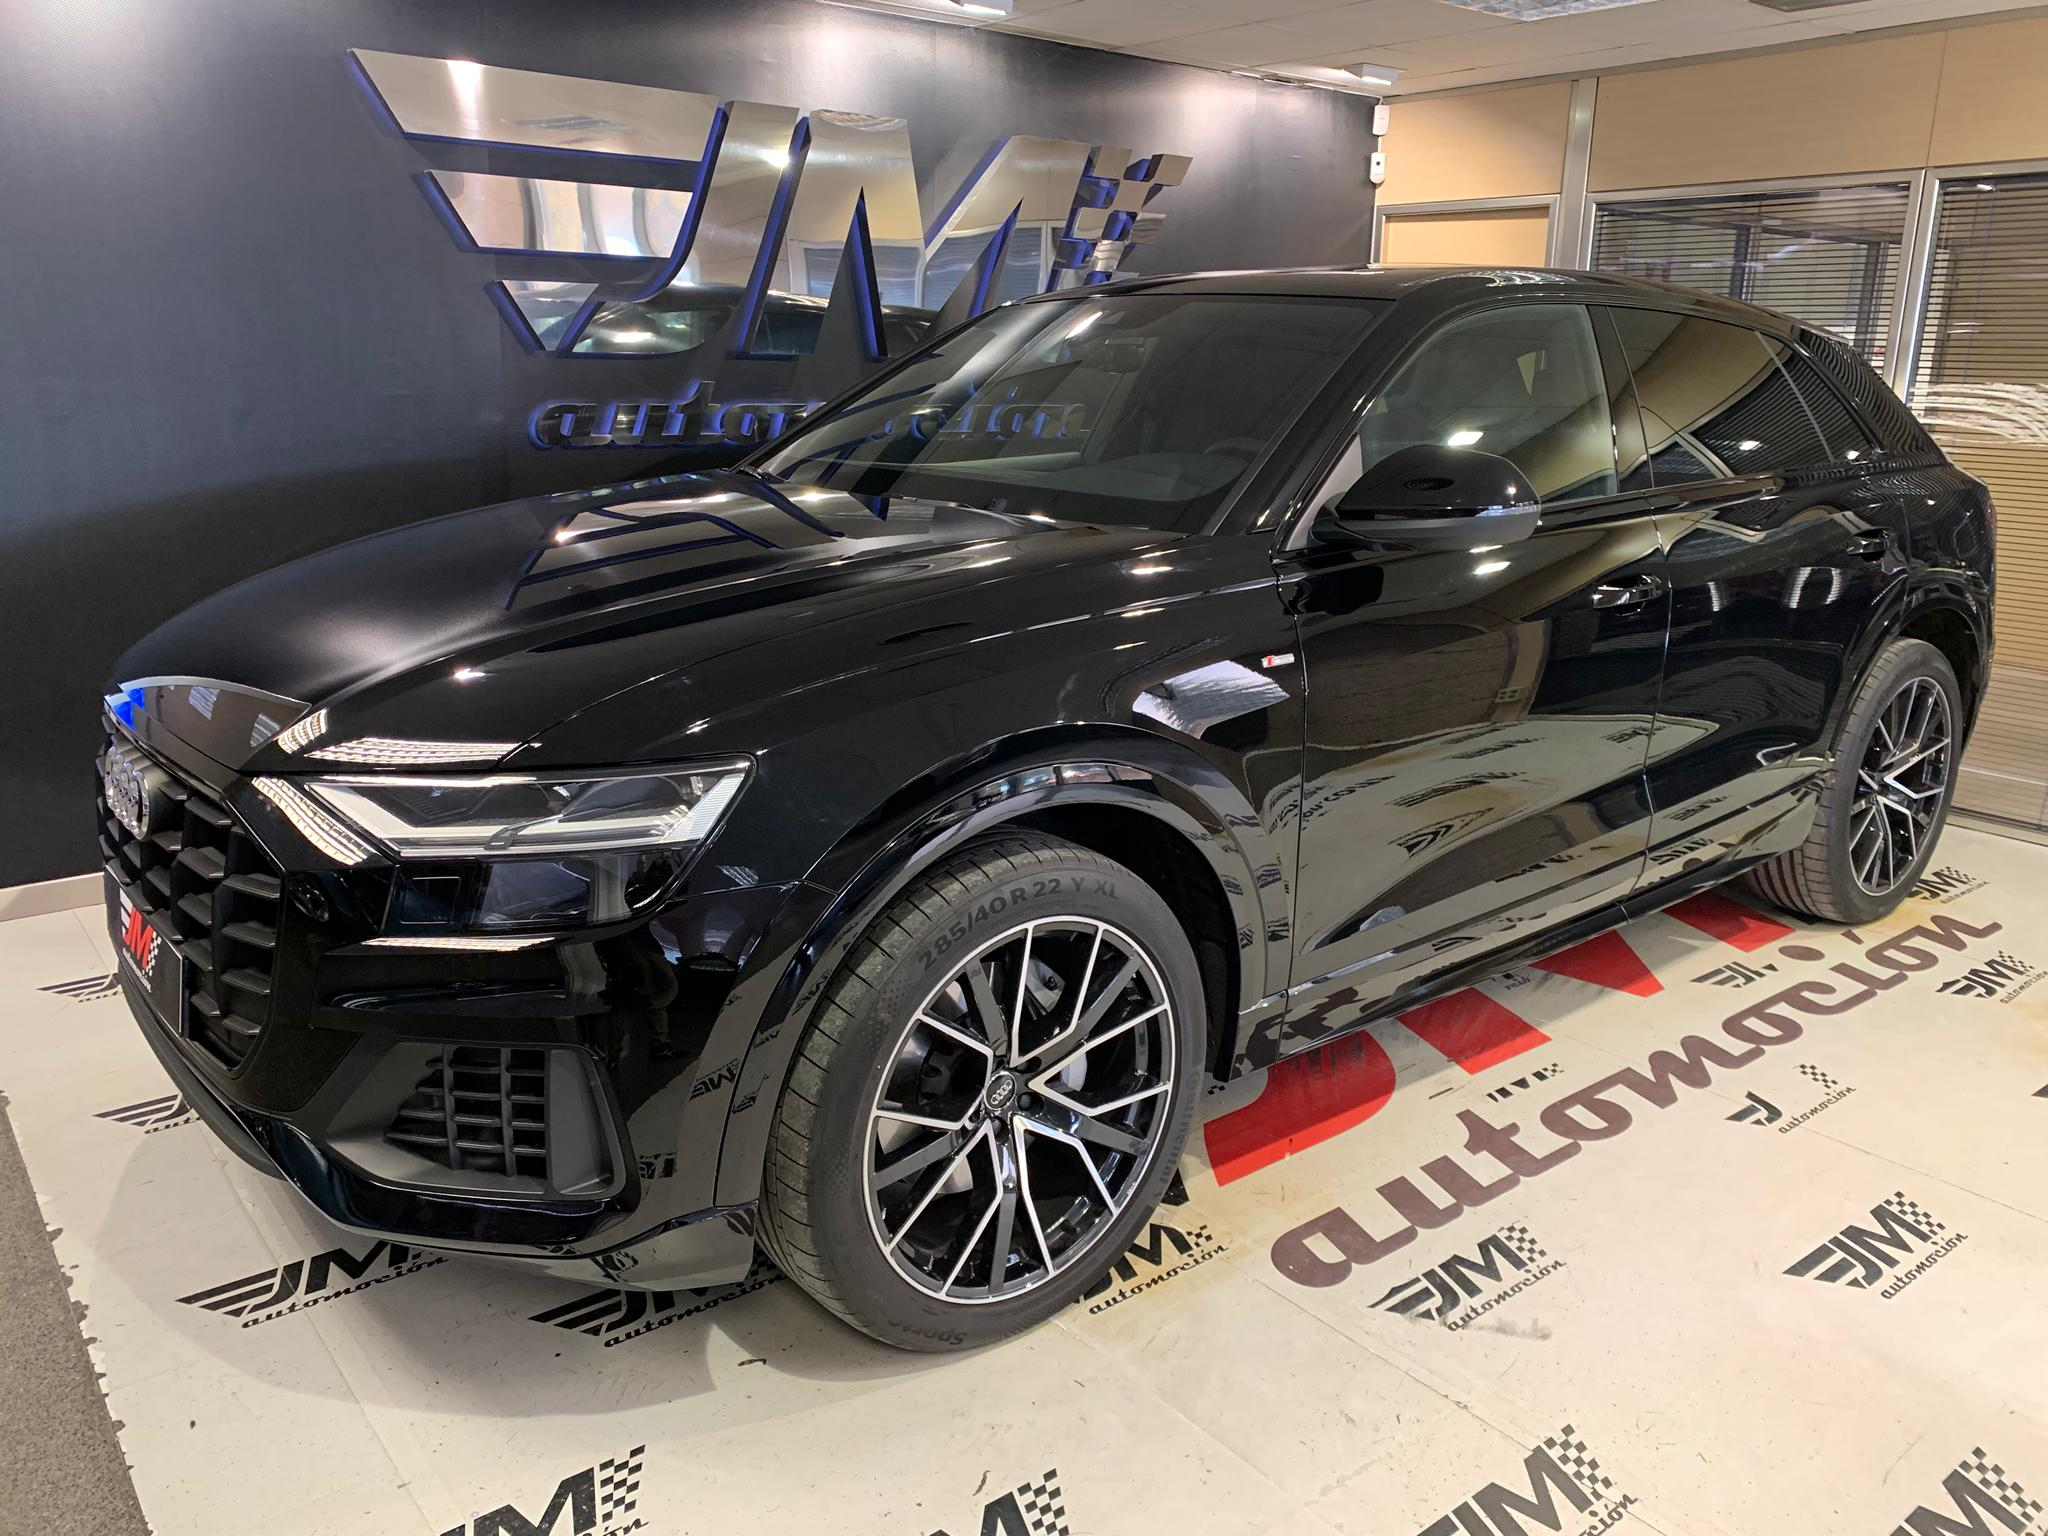 AUDI Q8 50 TDI QUATTRO 2020 --IVA DEDUCIBLE--